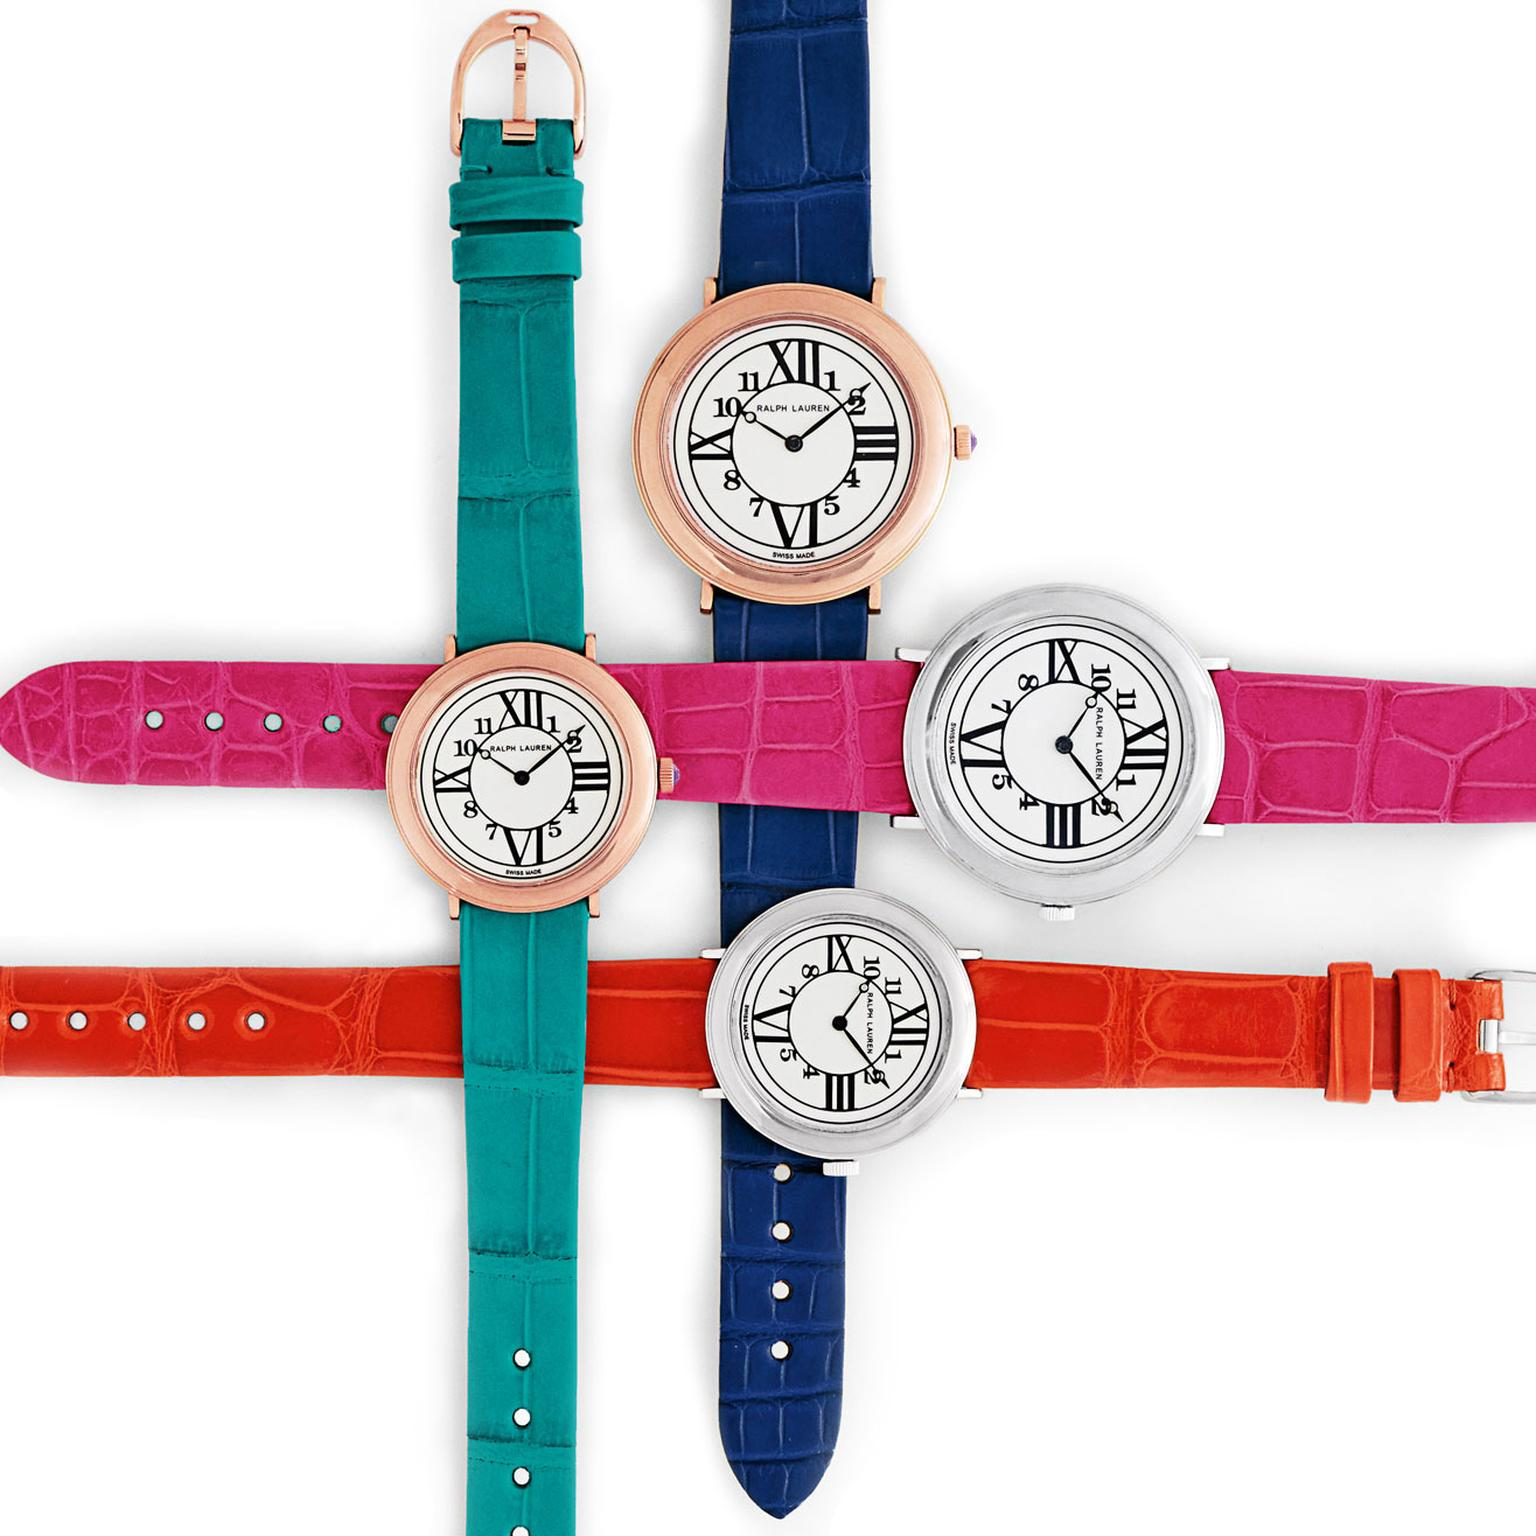 Ralph Lauren RL888 with interchangeable watch straps